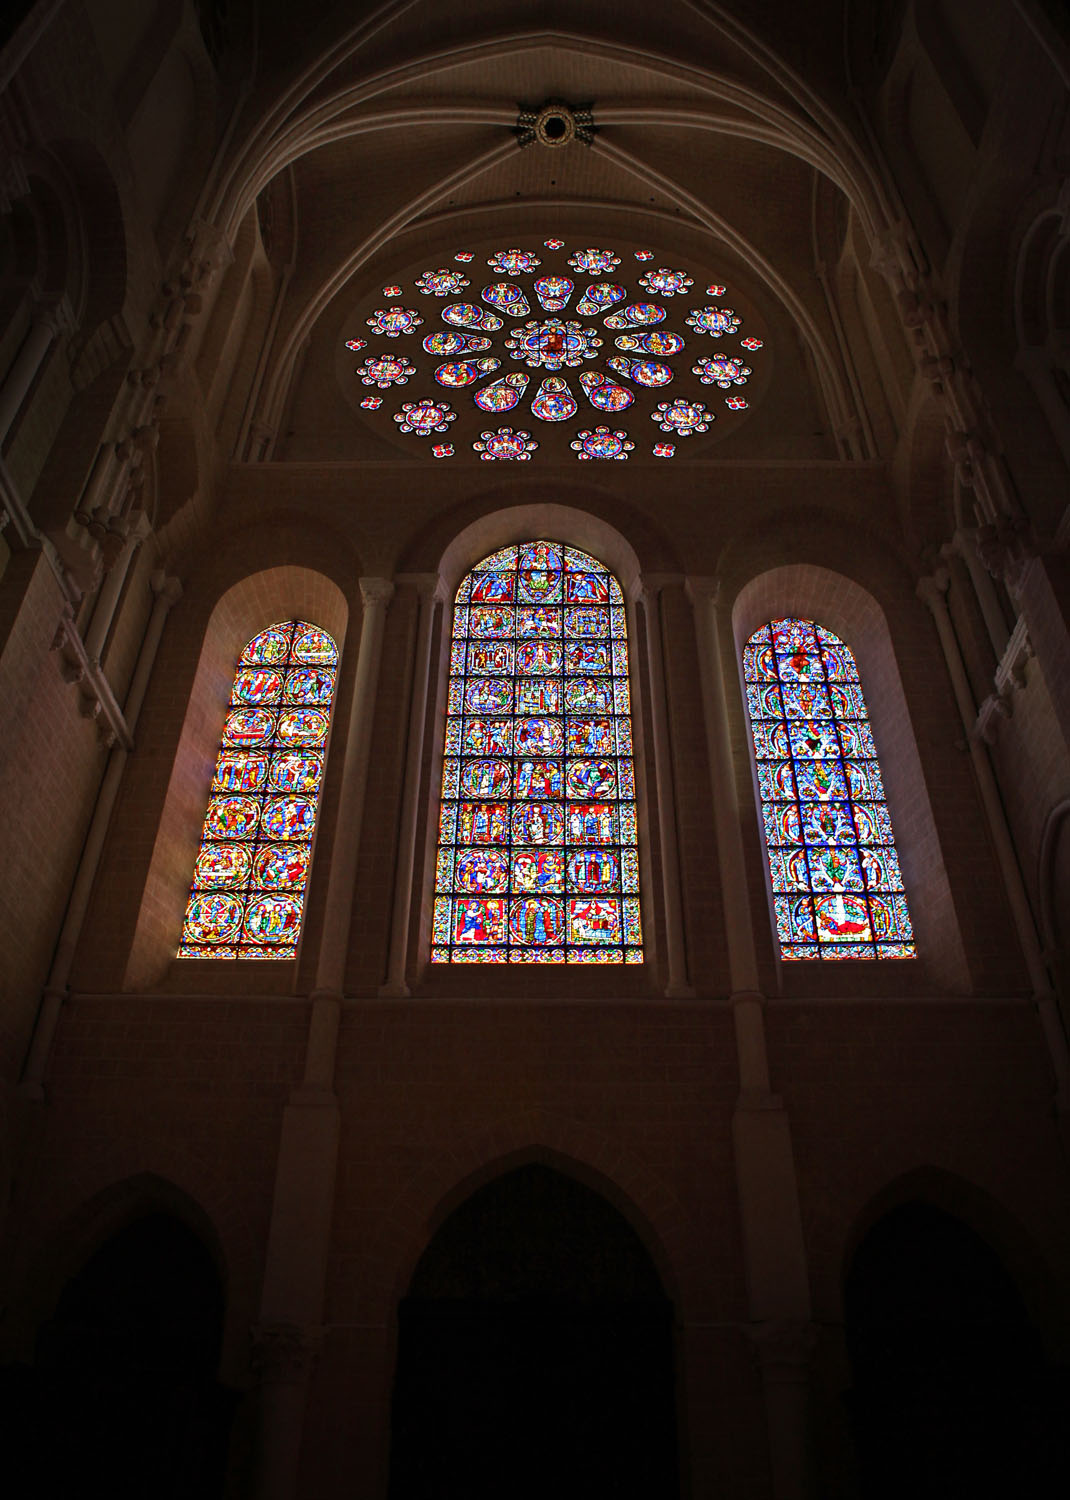 West Rose Window, Chartres Cathedral, Chartres, France